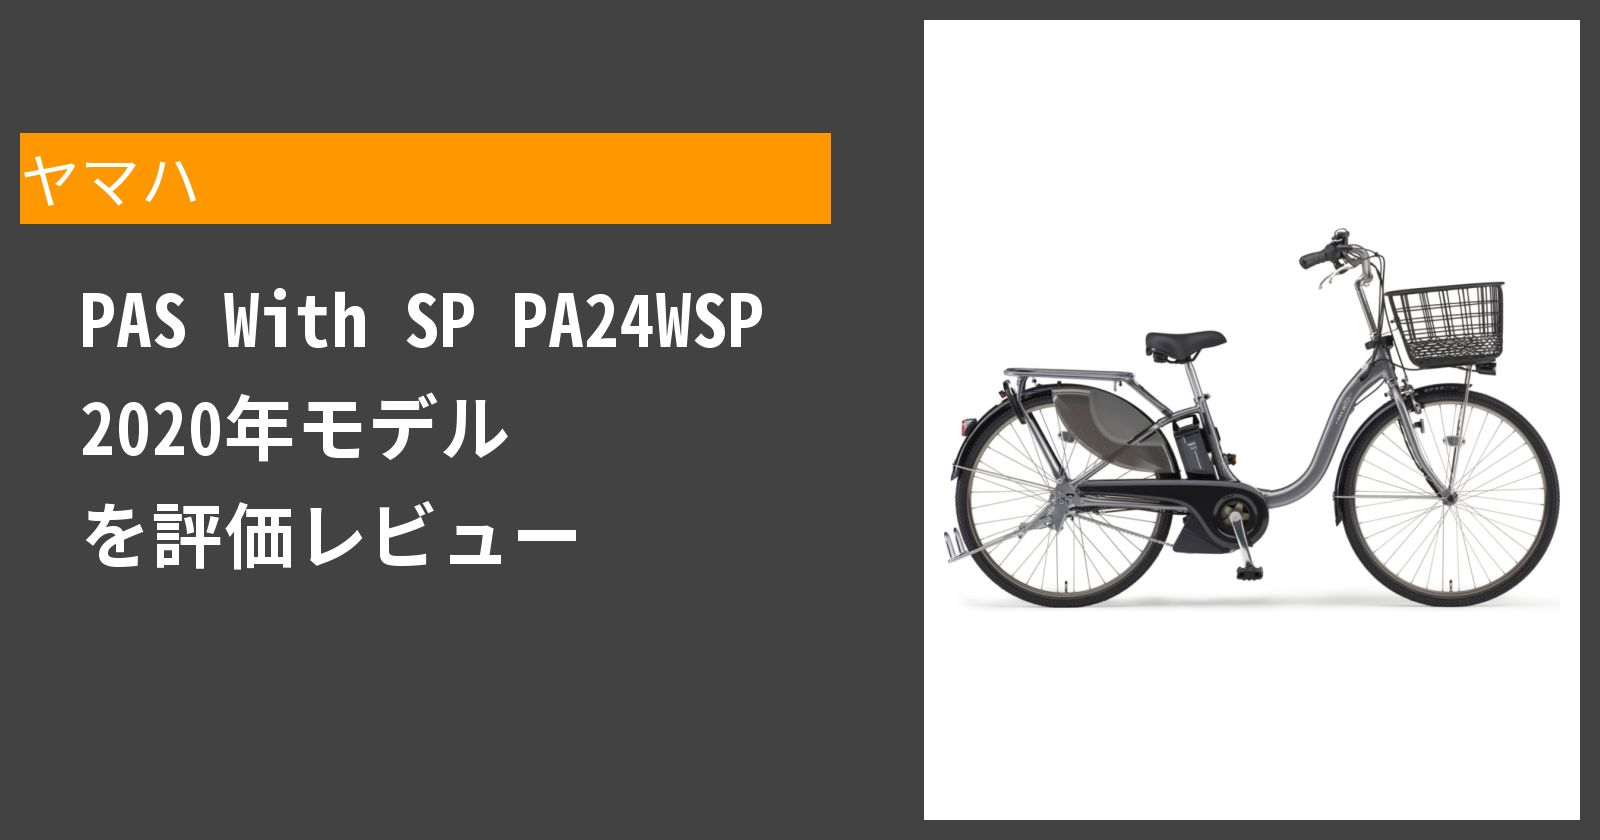 PAS With SP PA24WSP 2020年モデルを徹底評価